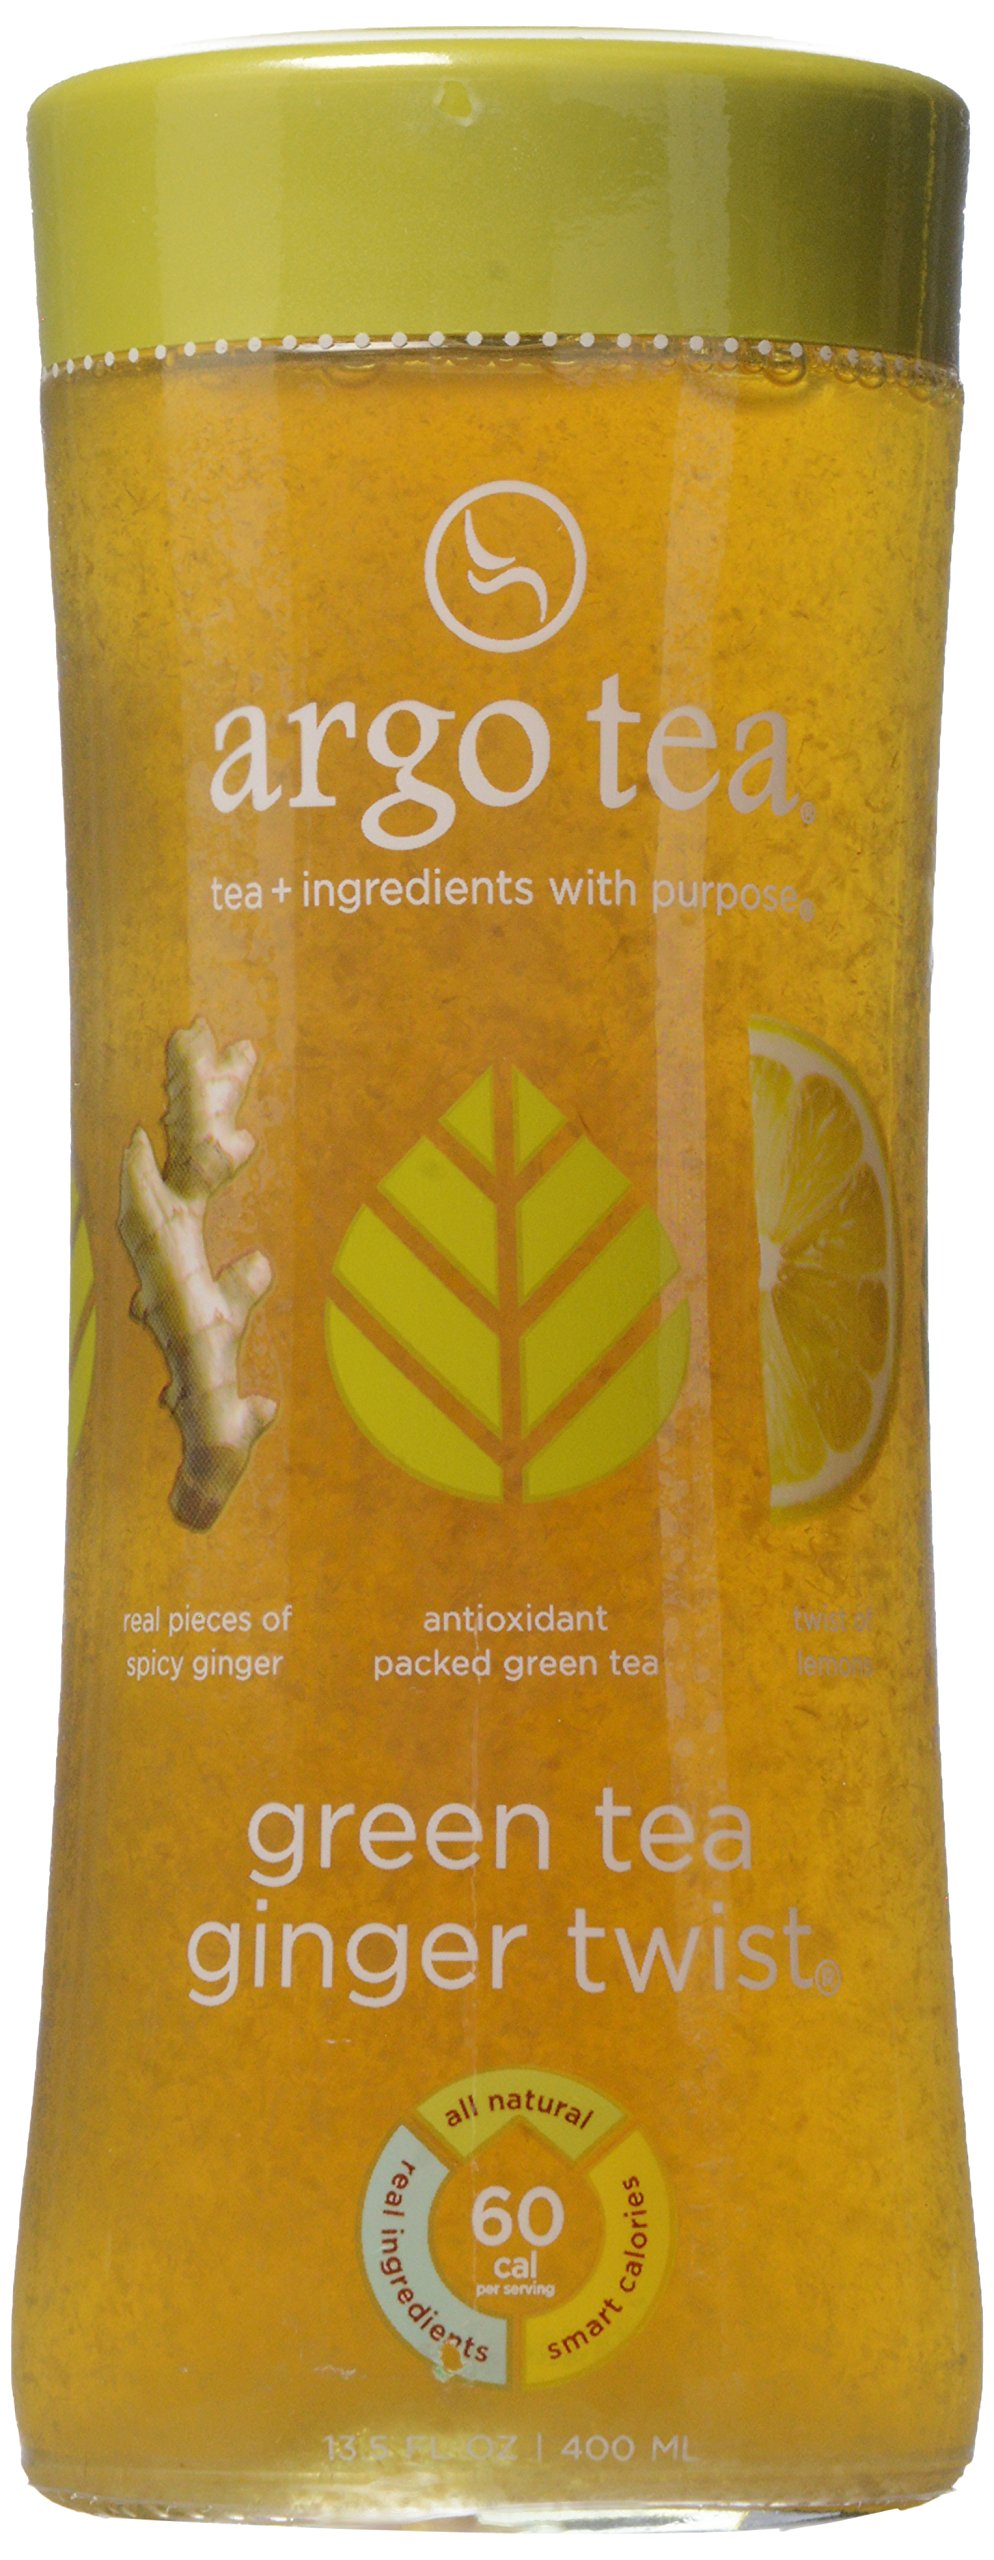 Argo Tea Bottled Tea Drink, Green Ginger Twist, 13.5 Fl Oz by Argo Tea